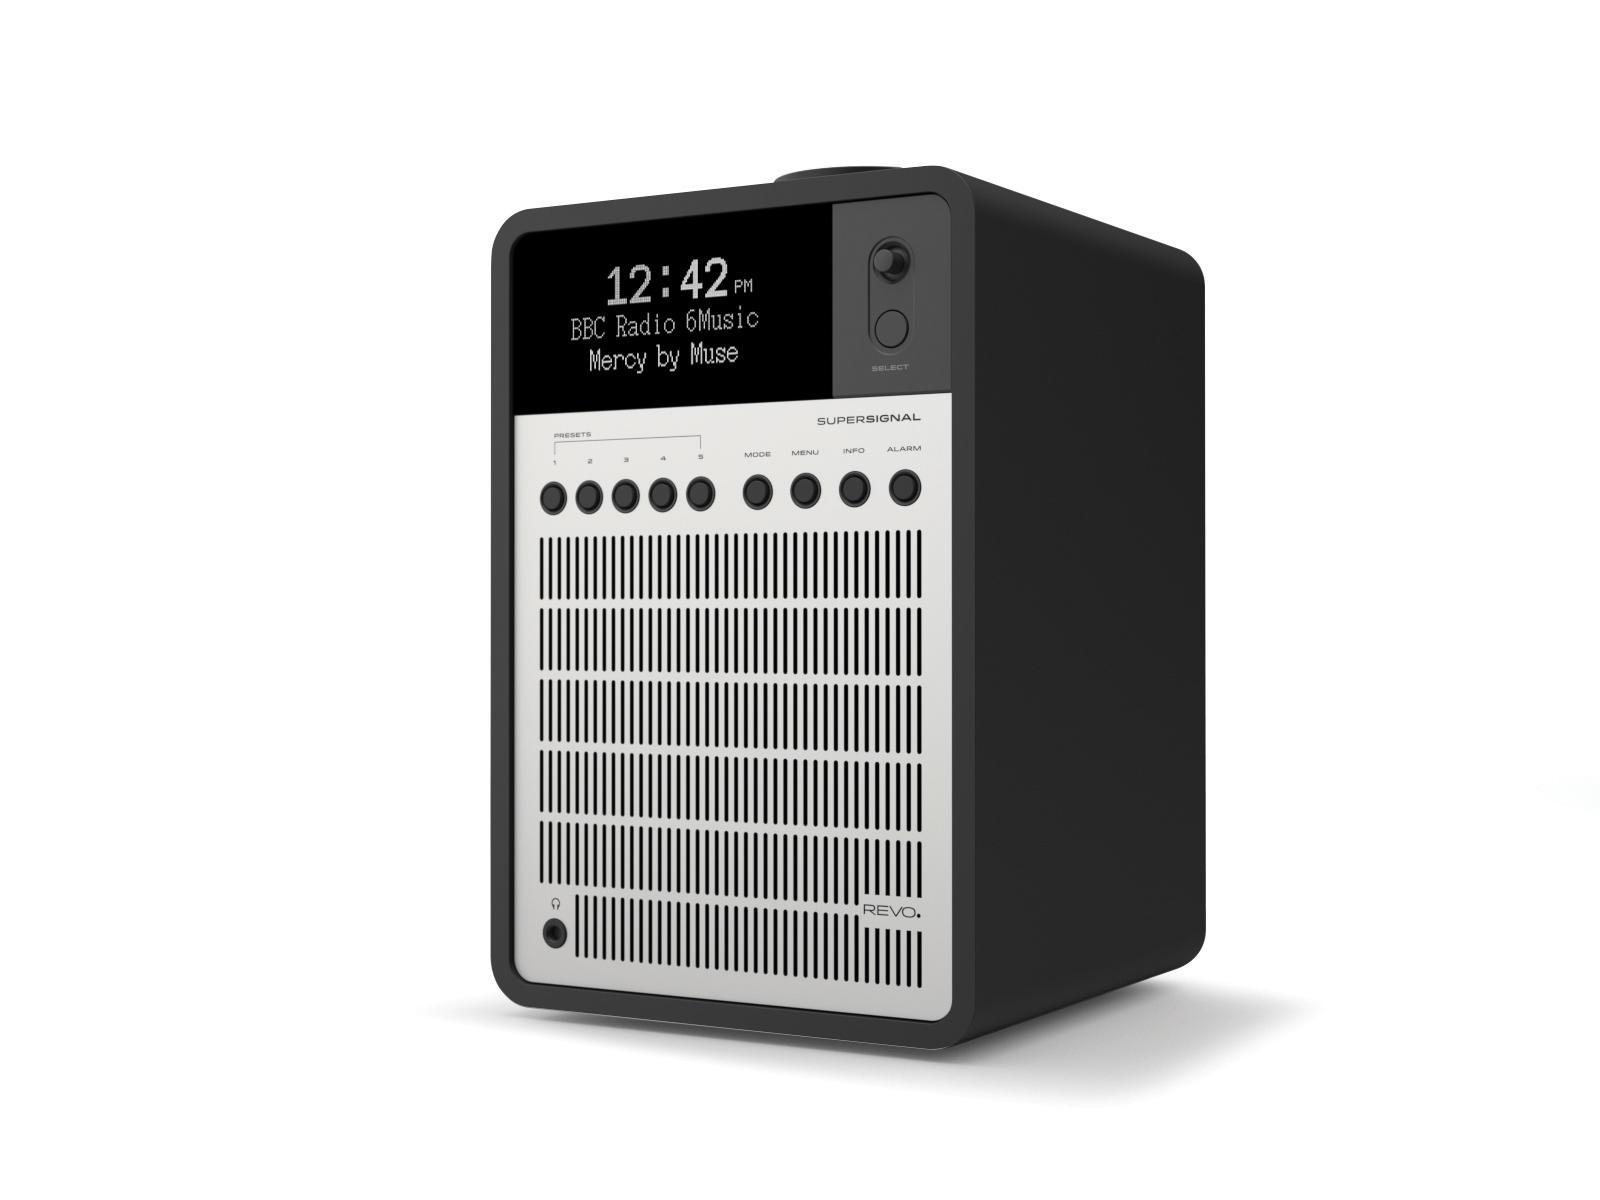 Revo SuperSignal DAB Radio with Bluetooth - Matt Black / Silver